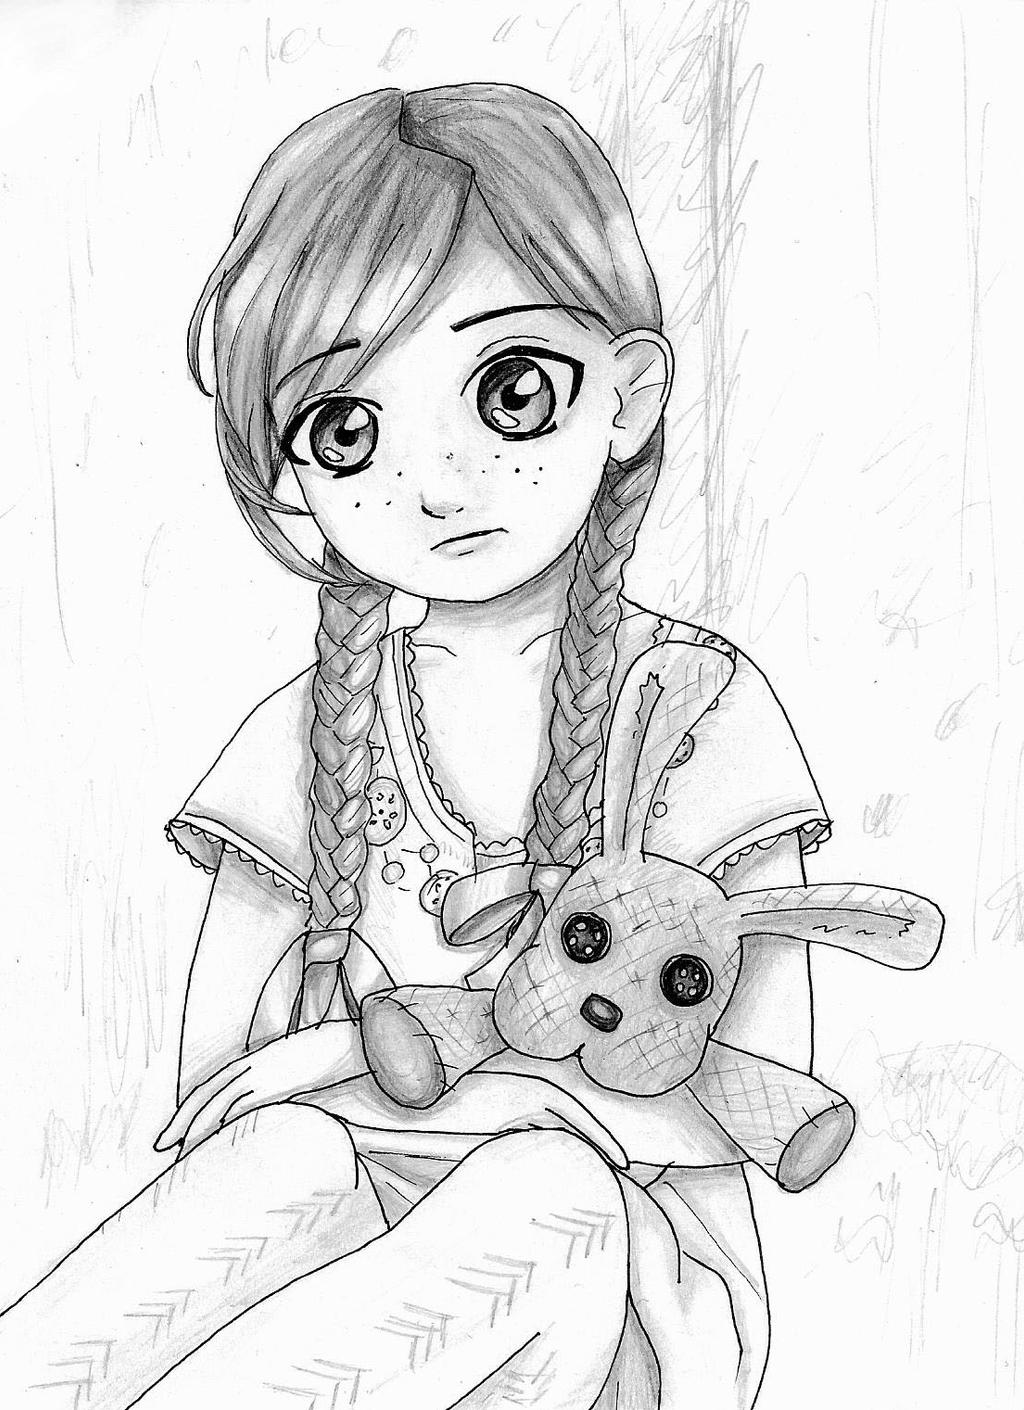 Sketch Of A Girl Sitting Alone | Www.imgkid.com - The Image Kid Has It!